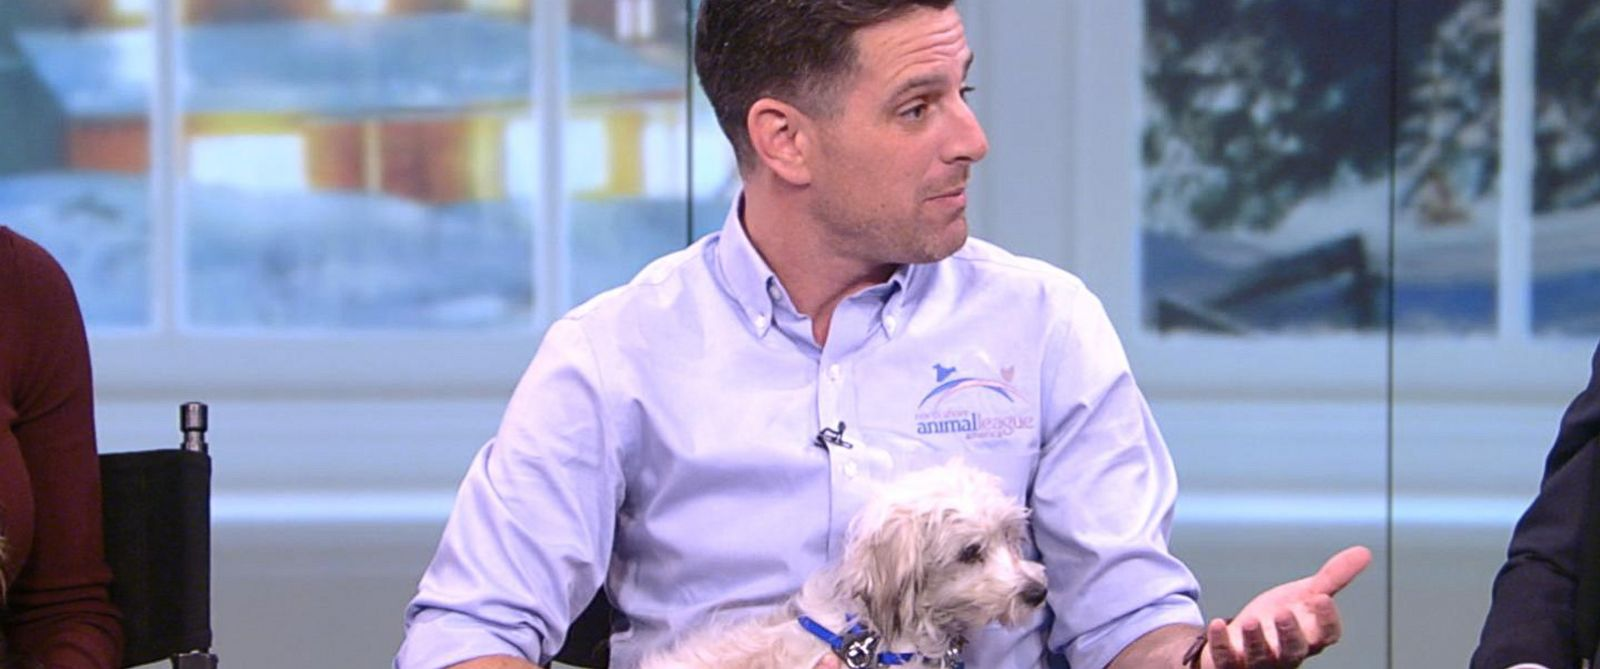 VIDEO: Things you need to know before adopting a family pet